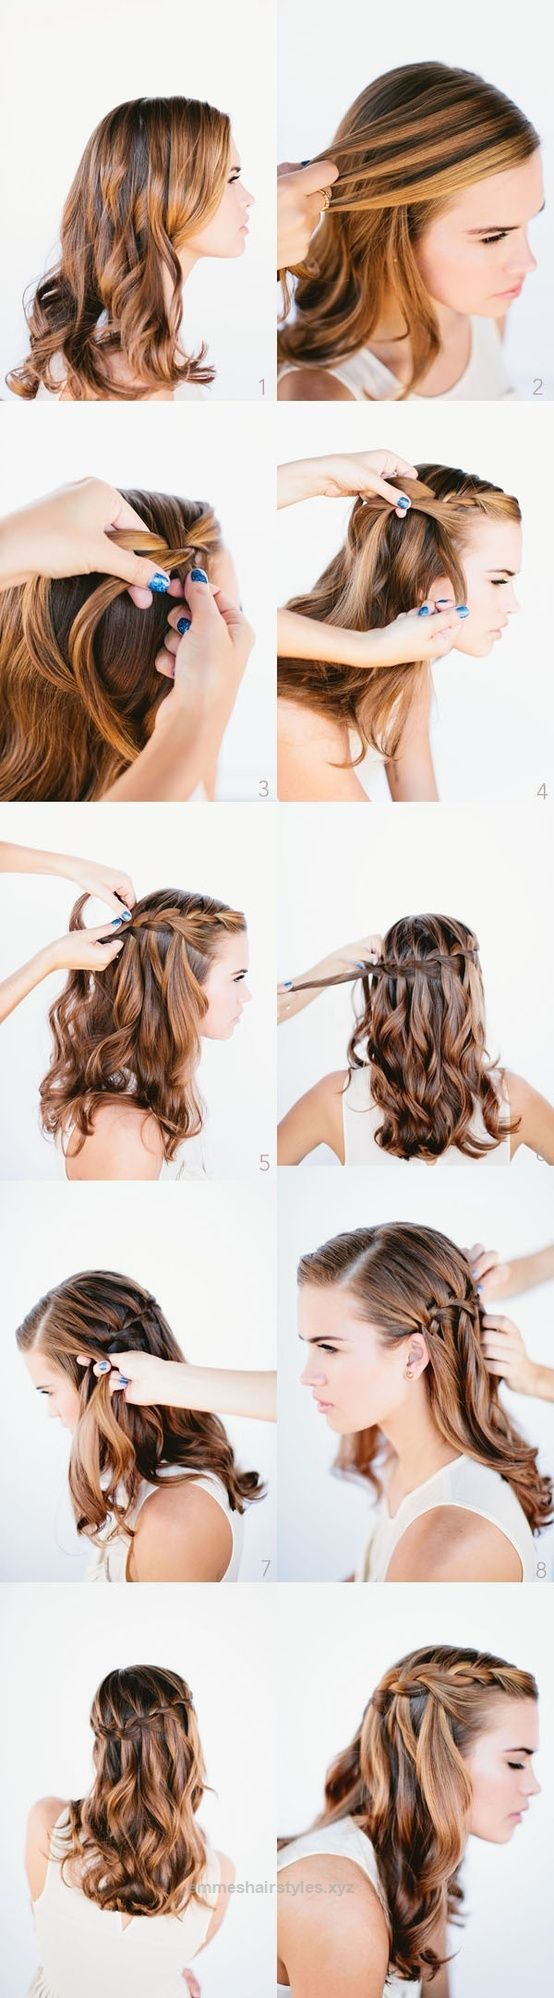 201 best Wedding Hairstyles images on Pinterest | Hairstyle ideas ...